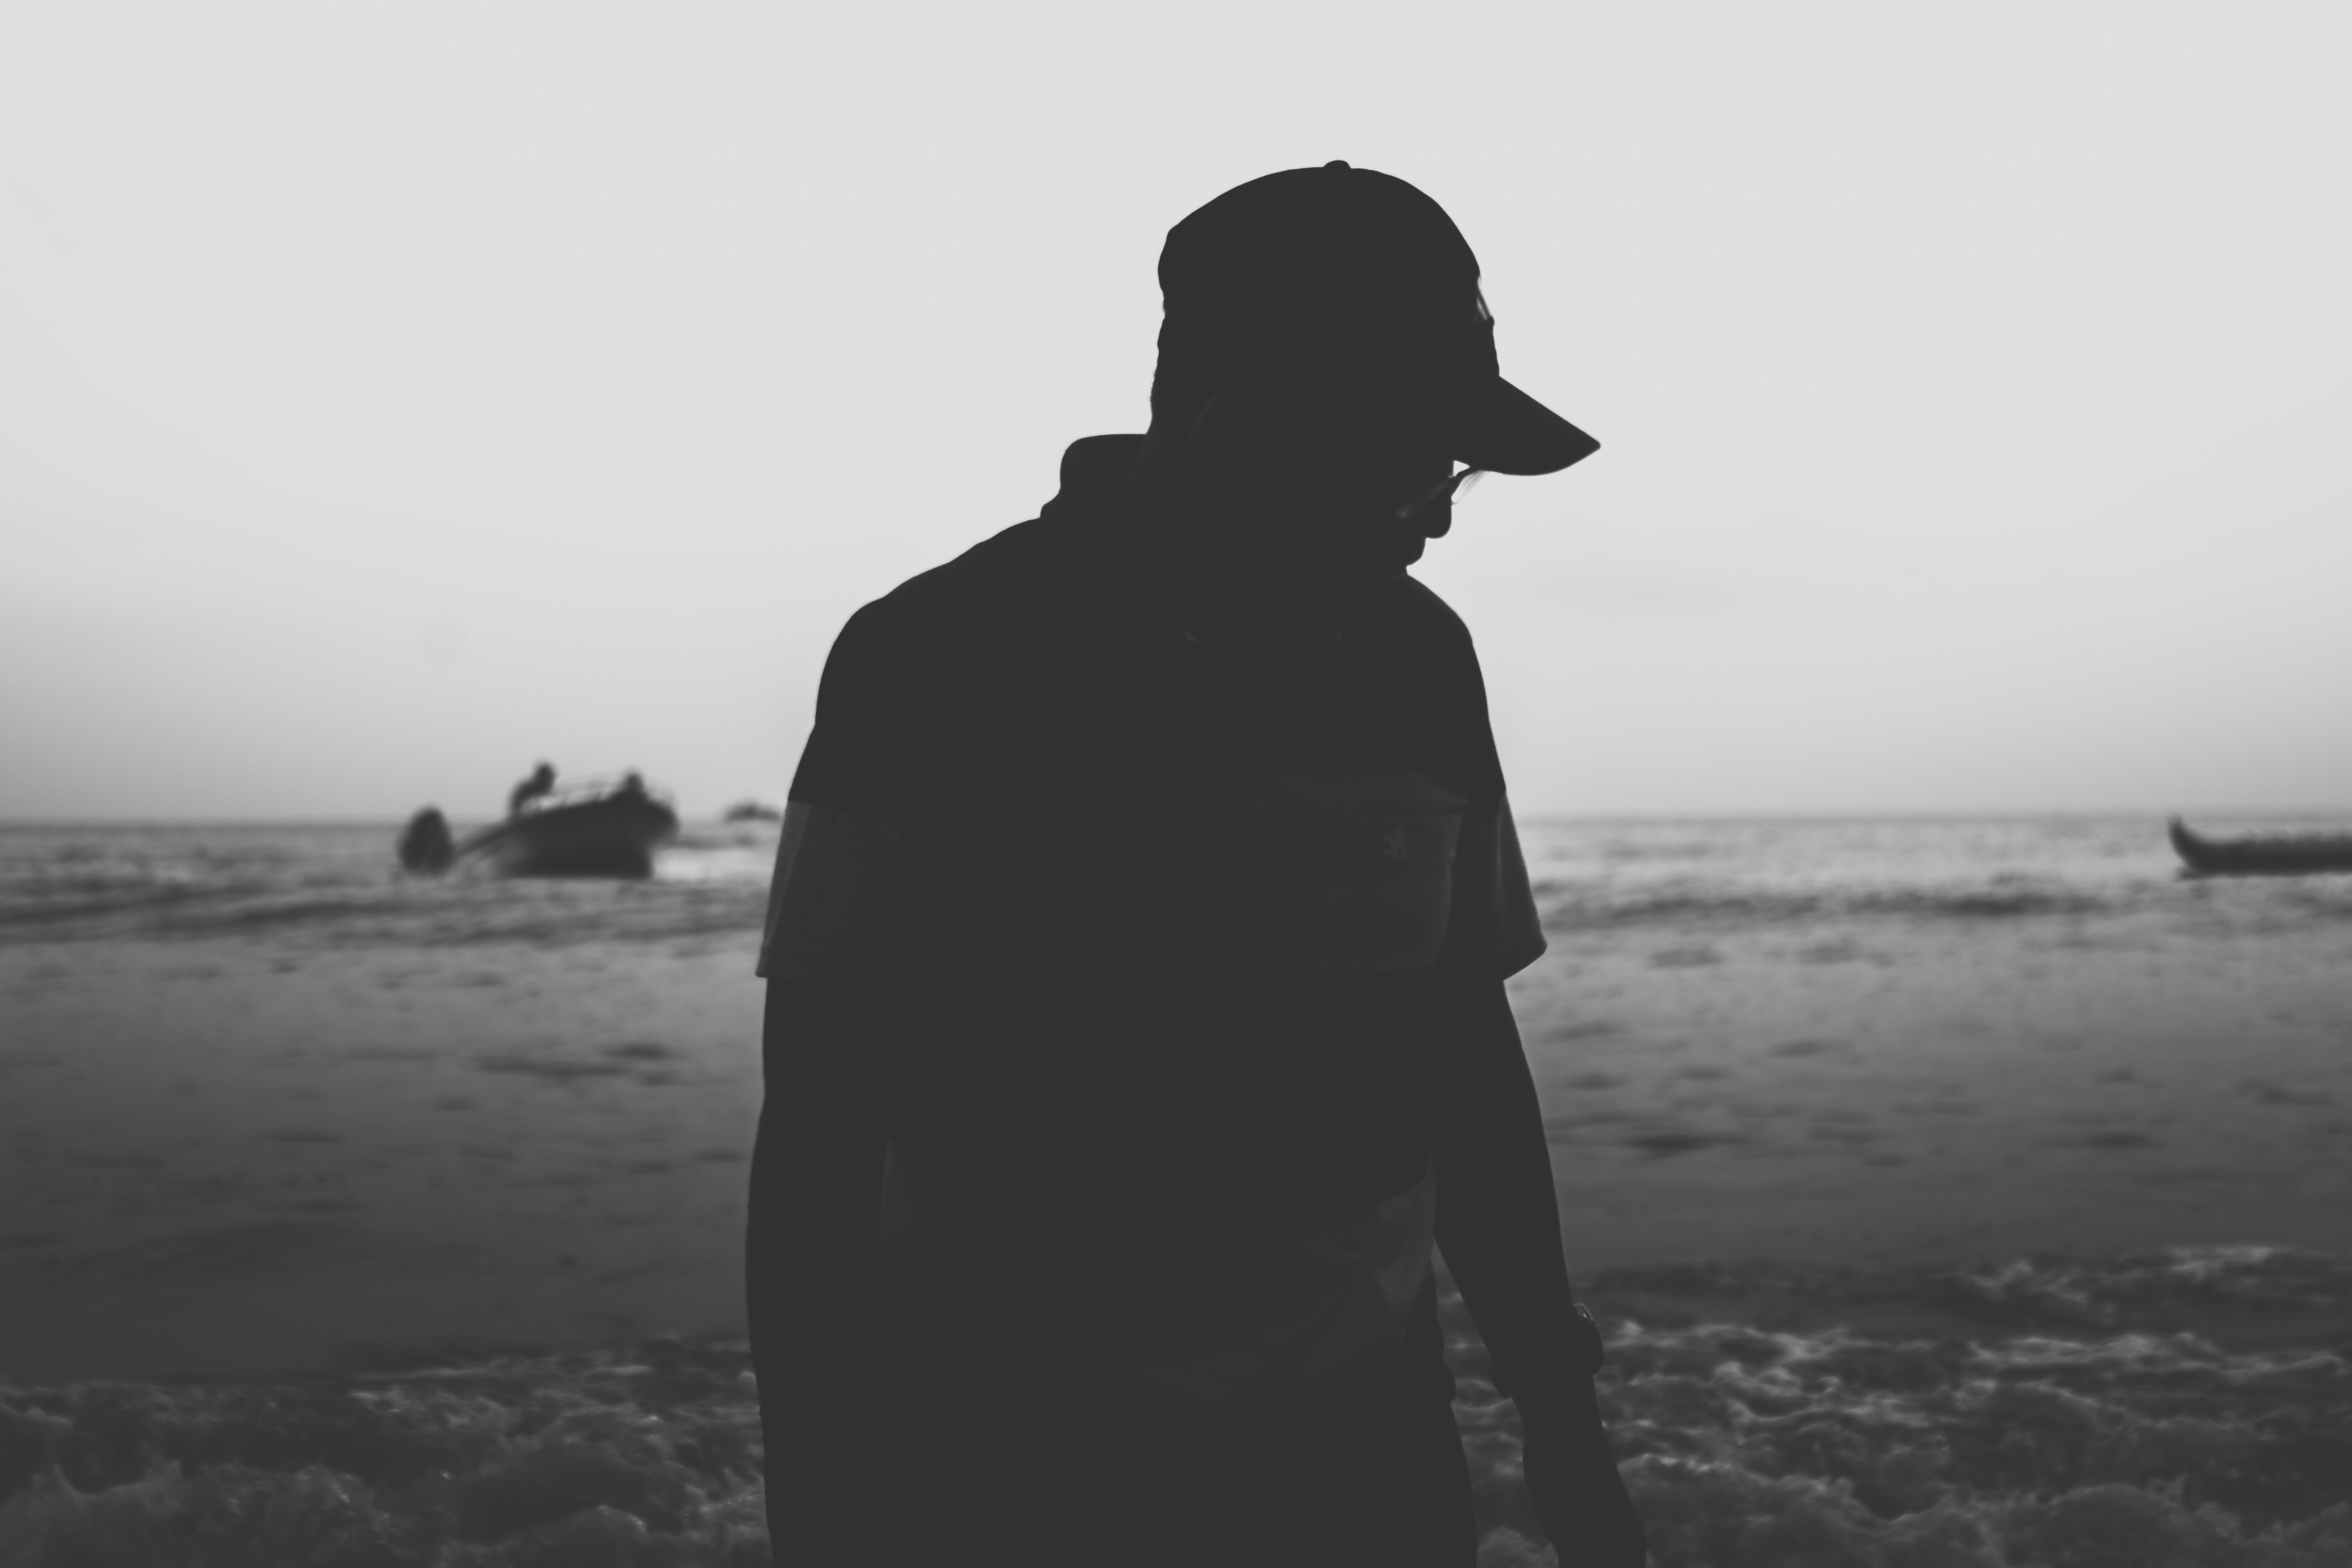 silhouette photo of person in cap